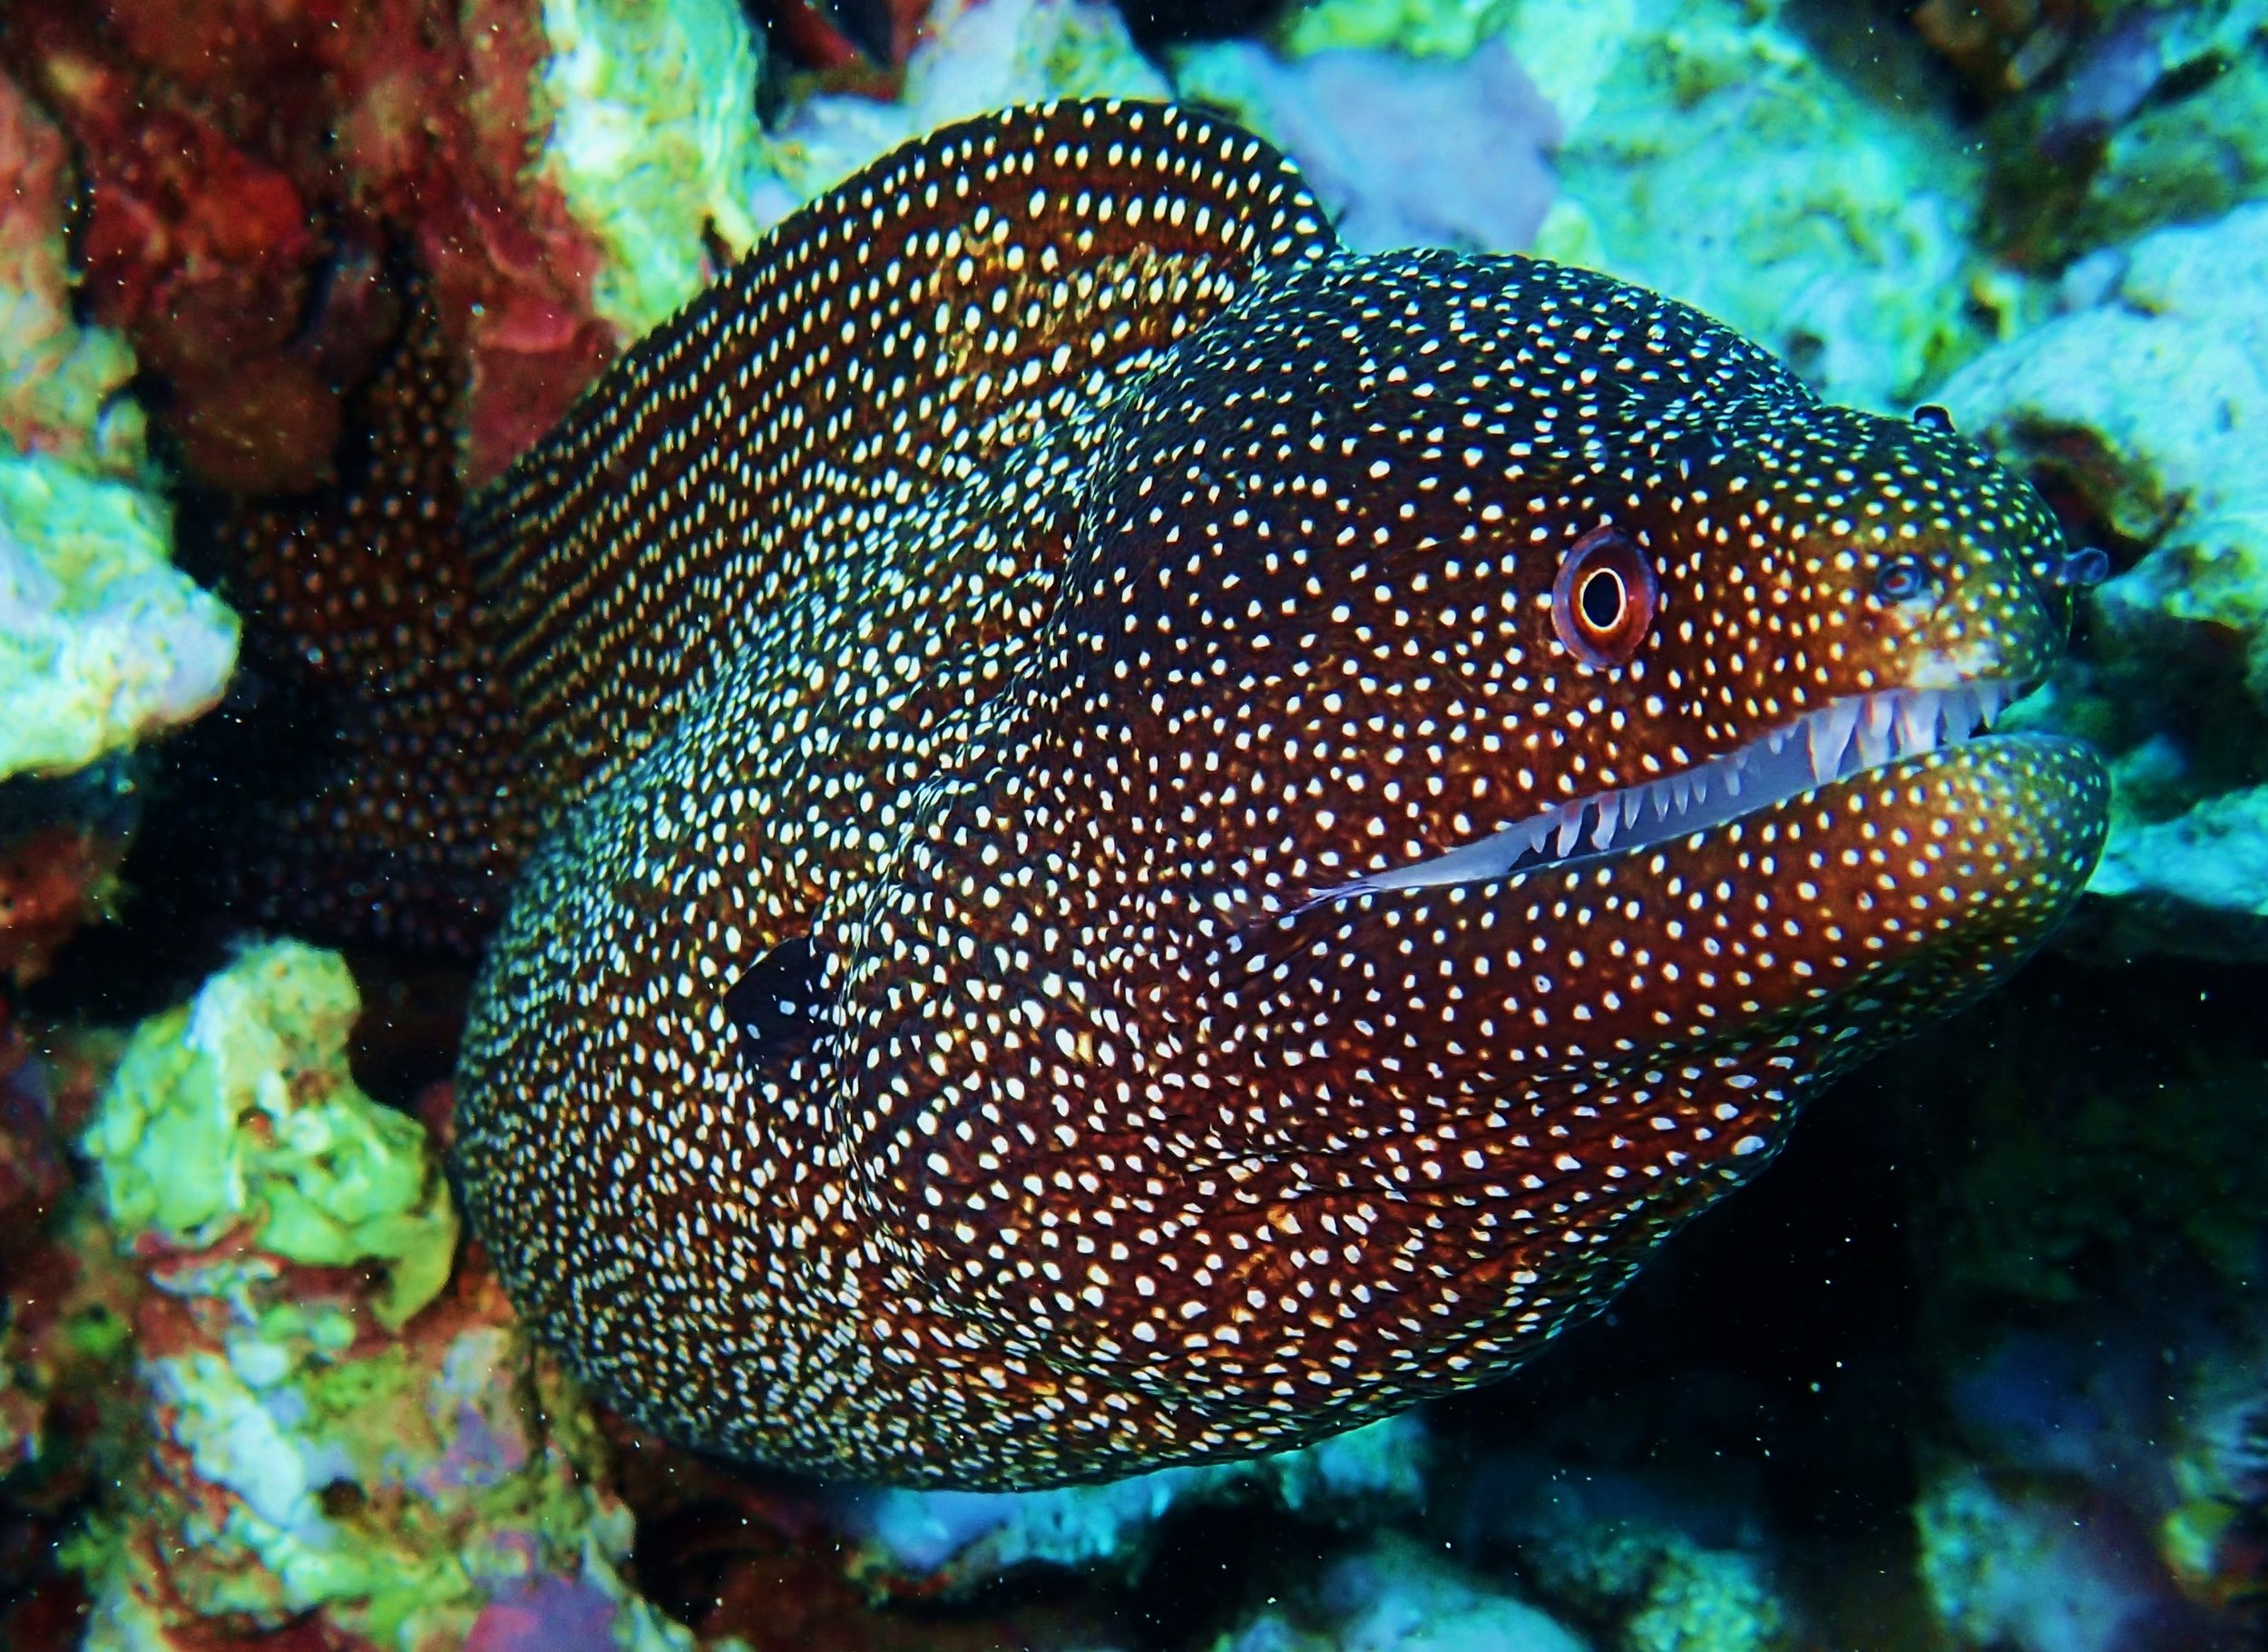 MORAY EELS - Eels do not have dorsal (side) fins so they look like swimming snakes. Their colors range from black, brown, blue, green, yellow, and white. They are more often spotted or have intricate multi-colored patterns. Eels hide in crevices and pounce on their unsuspecting prey as they swim by. They prefer shallow reefs because there's plenty of places to hide. They dine on Squid, Octopus, and hard-shelled invertebrates.